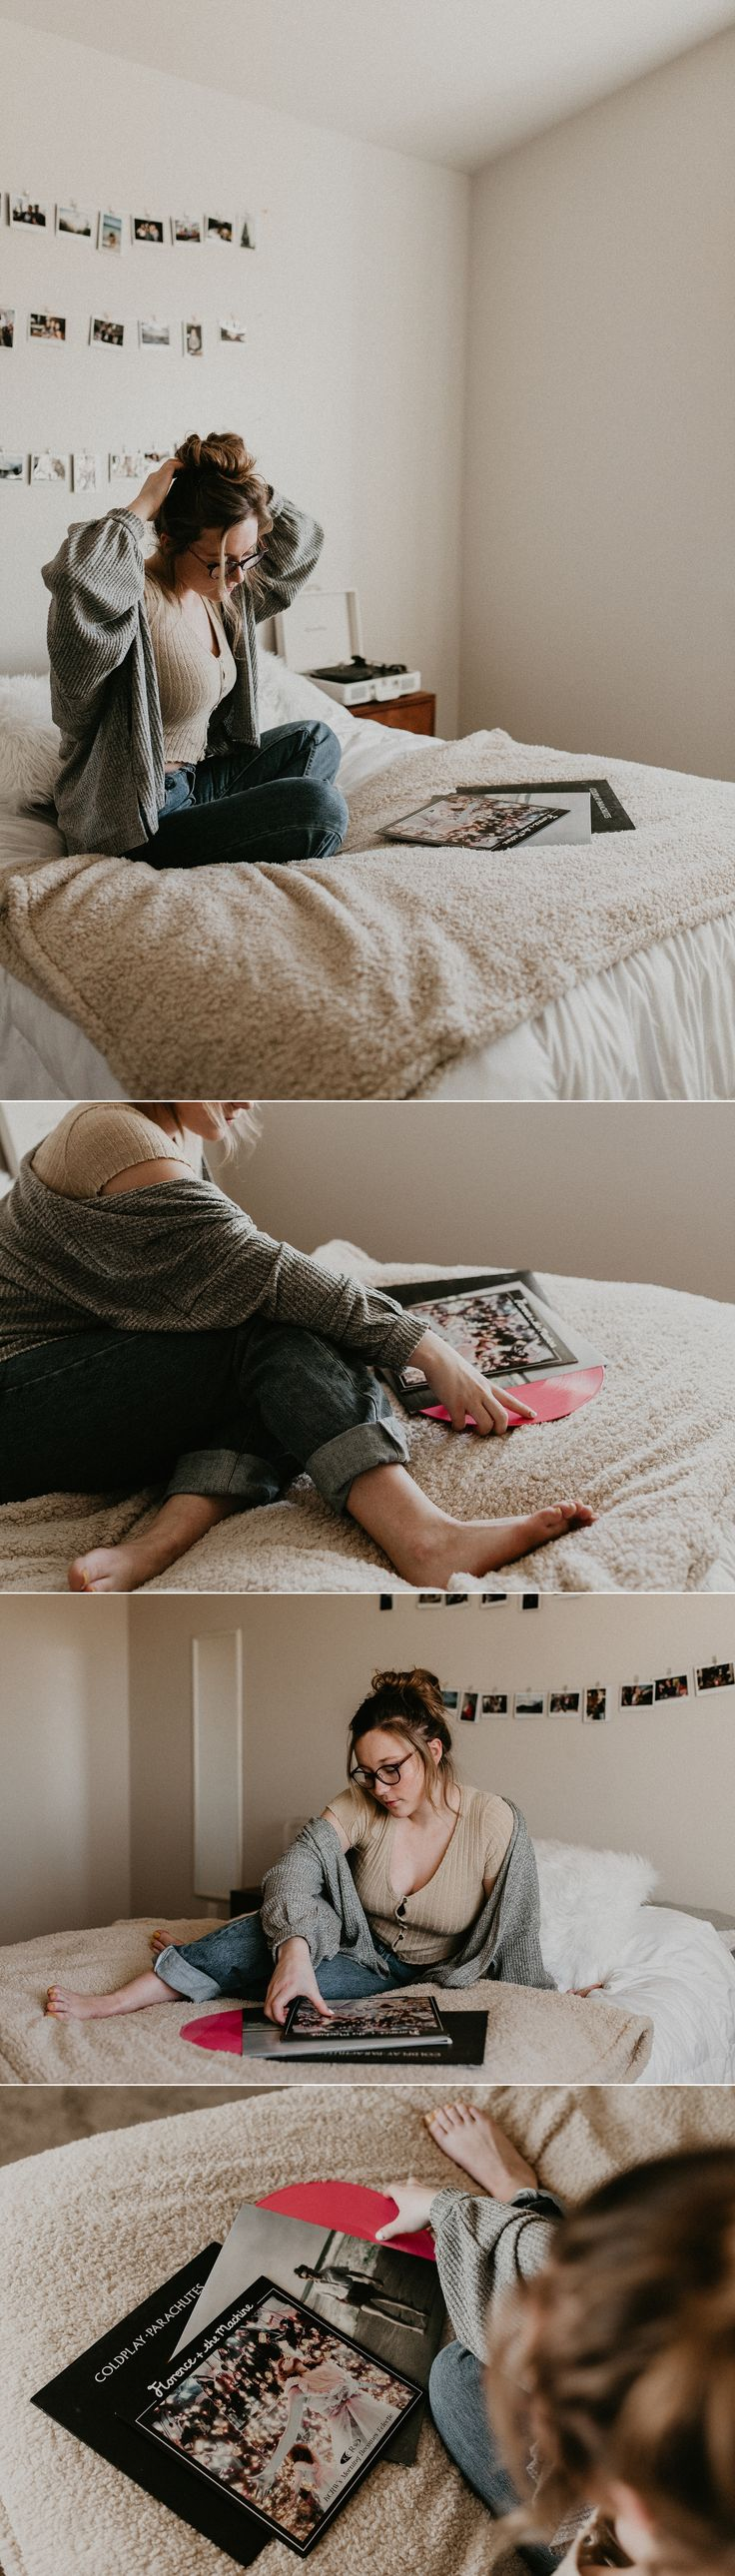 Boise Boudoir Photographer Boudoir By Kayla Makayla Madden Photography Idaho Lifestyle Boudoir Urban Outfitters Boise Senior Photographer Polaroids Lazy Day Vibes Uo On You Sweater Weather Raw Real Boudoir Portraits Vinyls Records Vintage Portrait Session